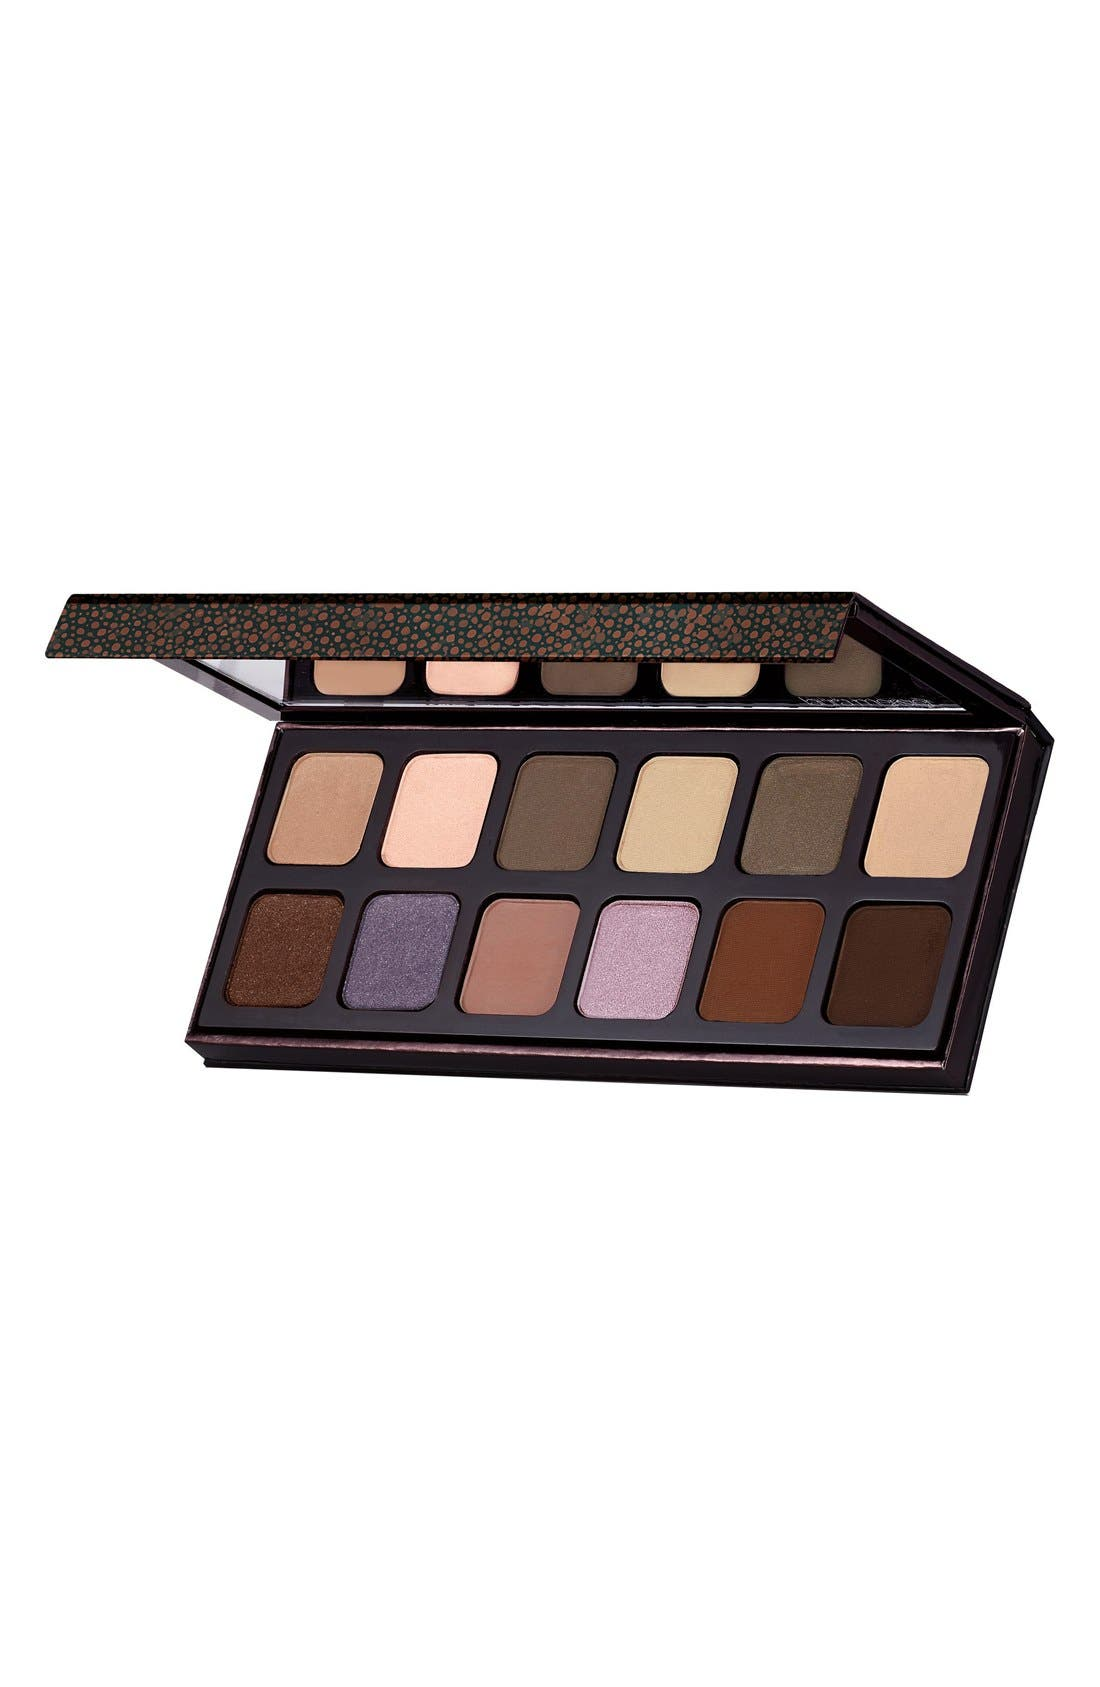 Extreme Neutrals Eyeshadow Palette,                             Main thumbnail 1, color,                             NO COLOR